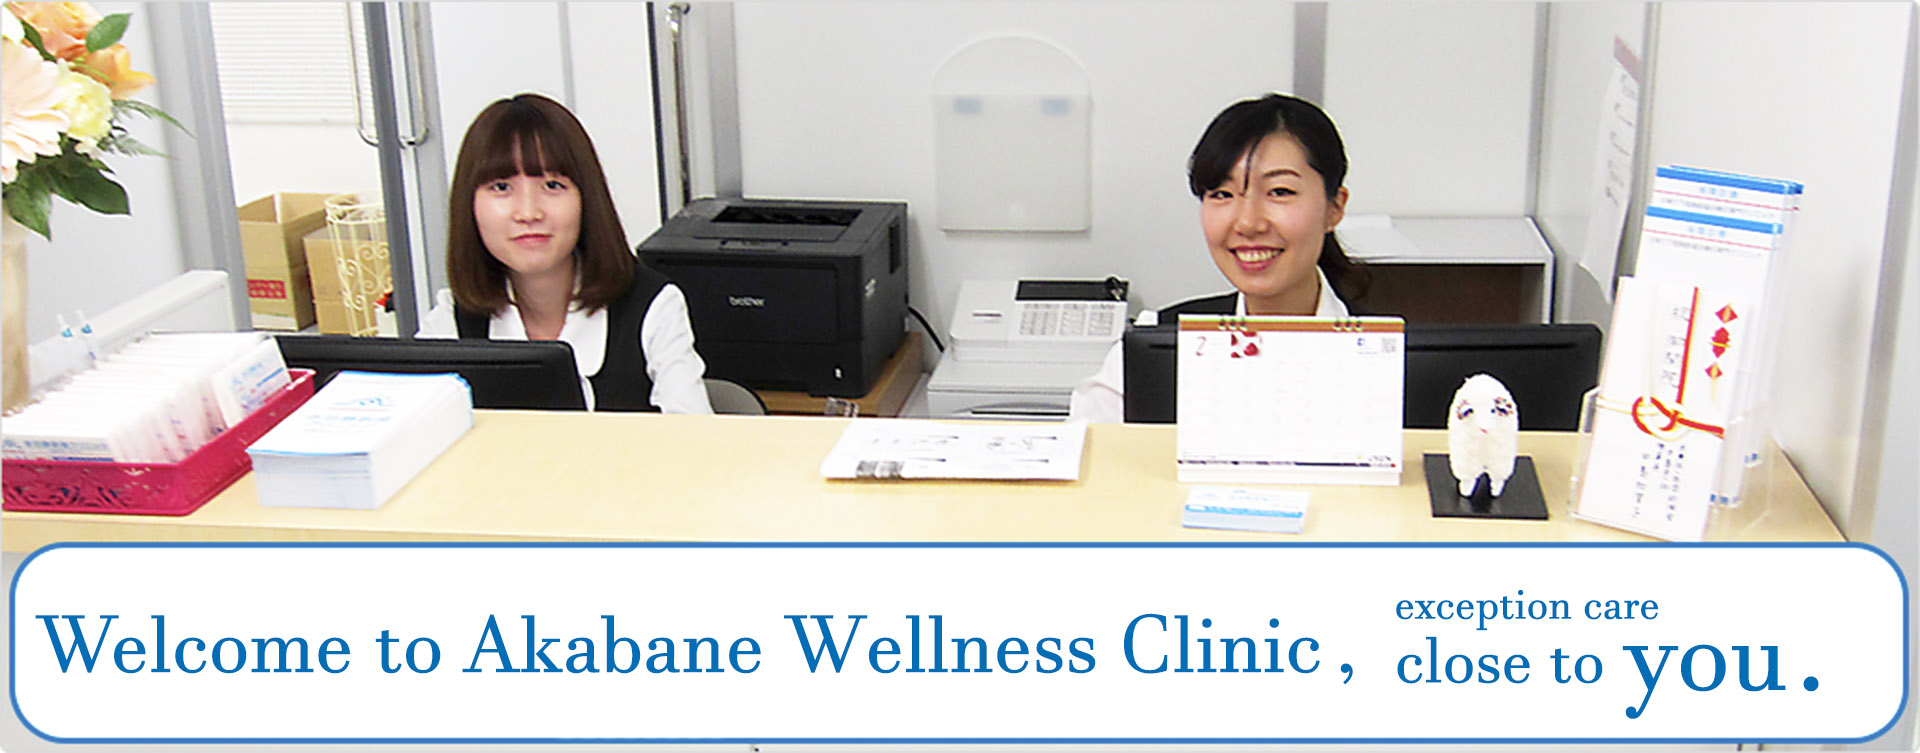 Welcome to Akabane veins clinic